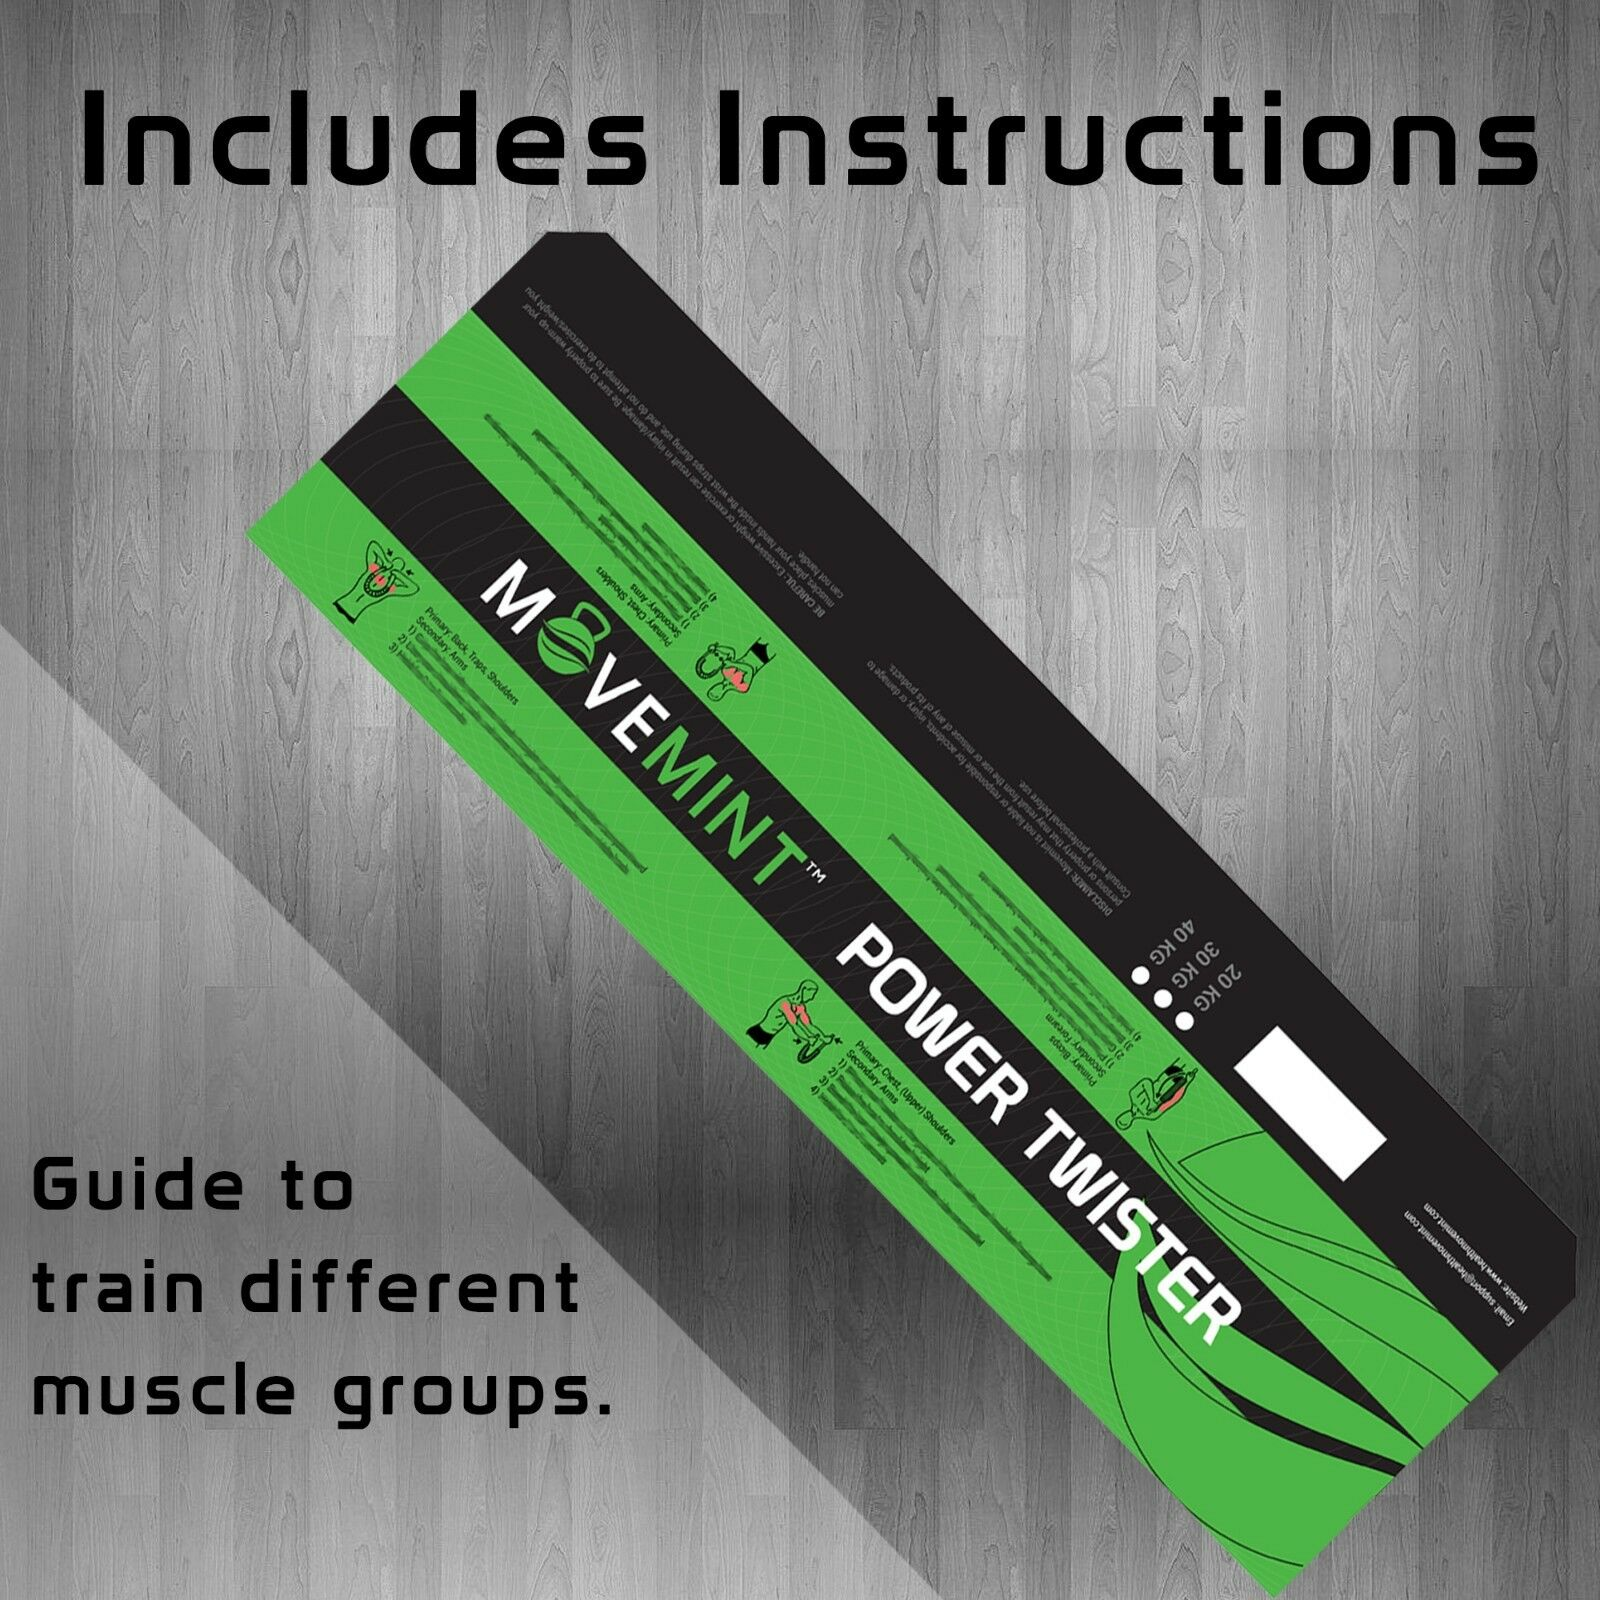 Chest Exercise Curl Equipment Curl Exercise Spring Bar Power Twister Shoulder Bicep Blaster f697c9